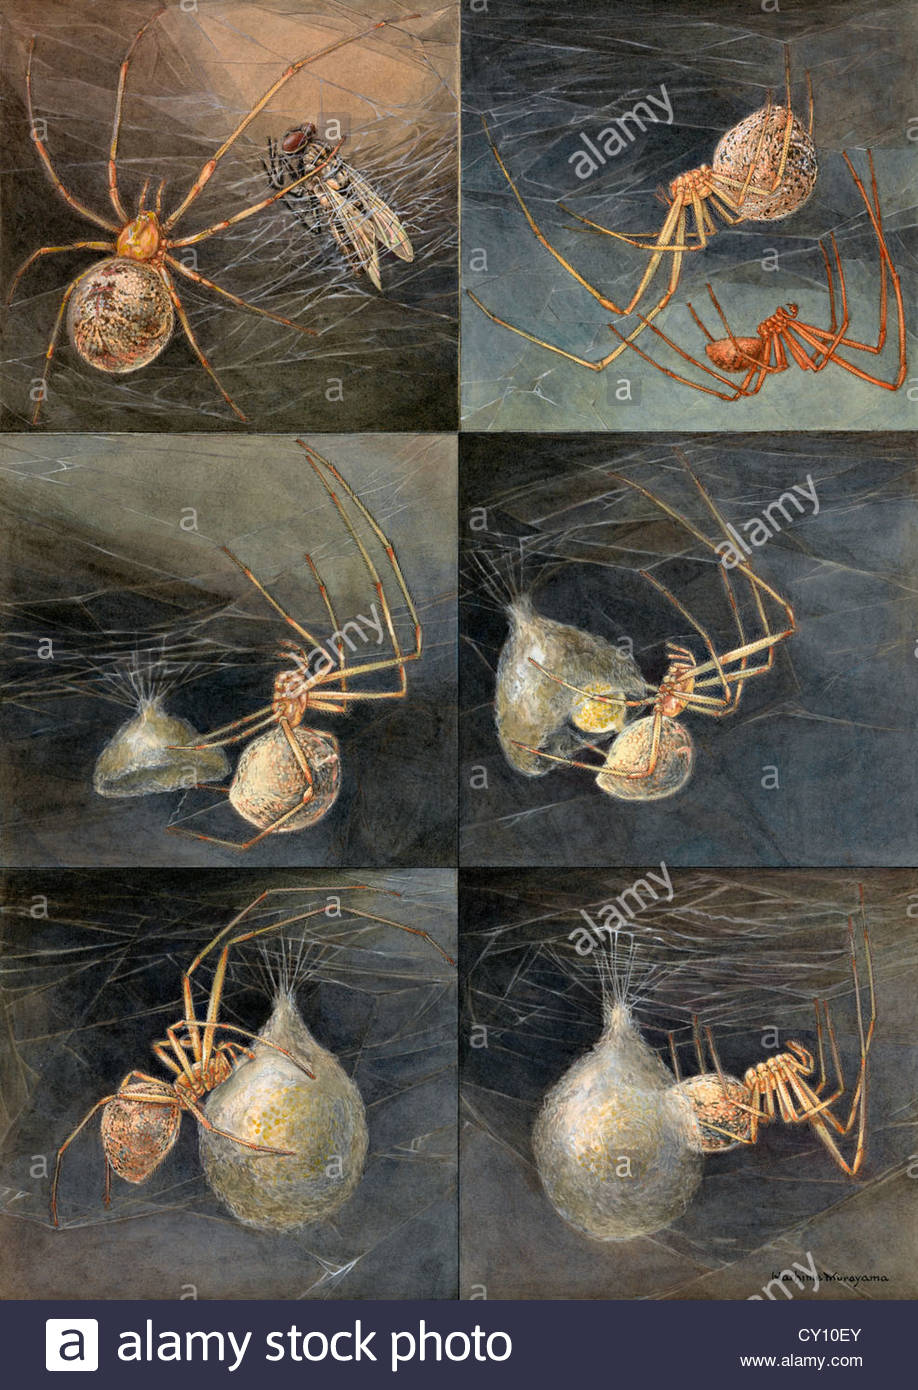 Painting of several spiders, Theridion tepidariorum, at work. - Stock Image